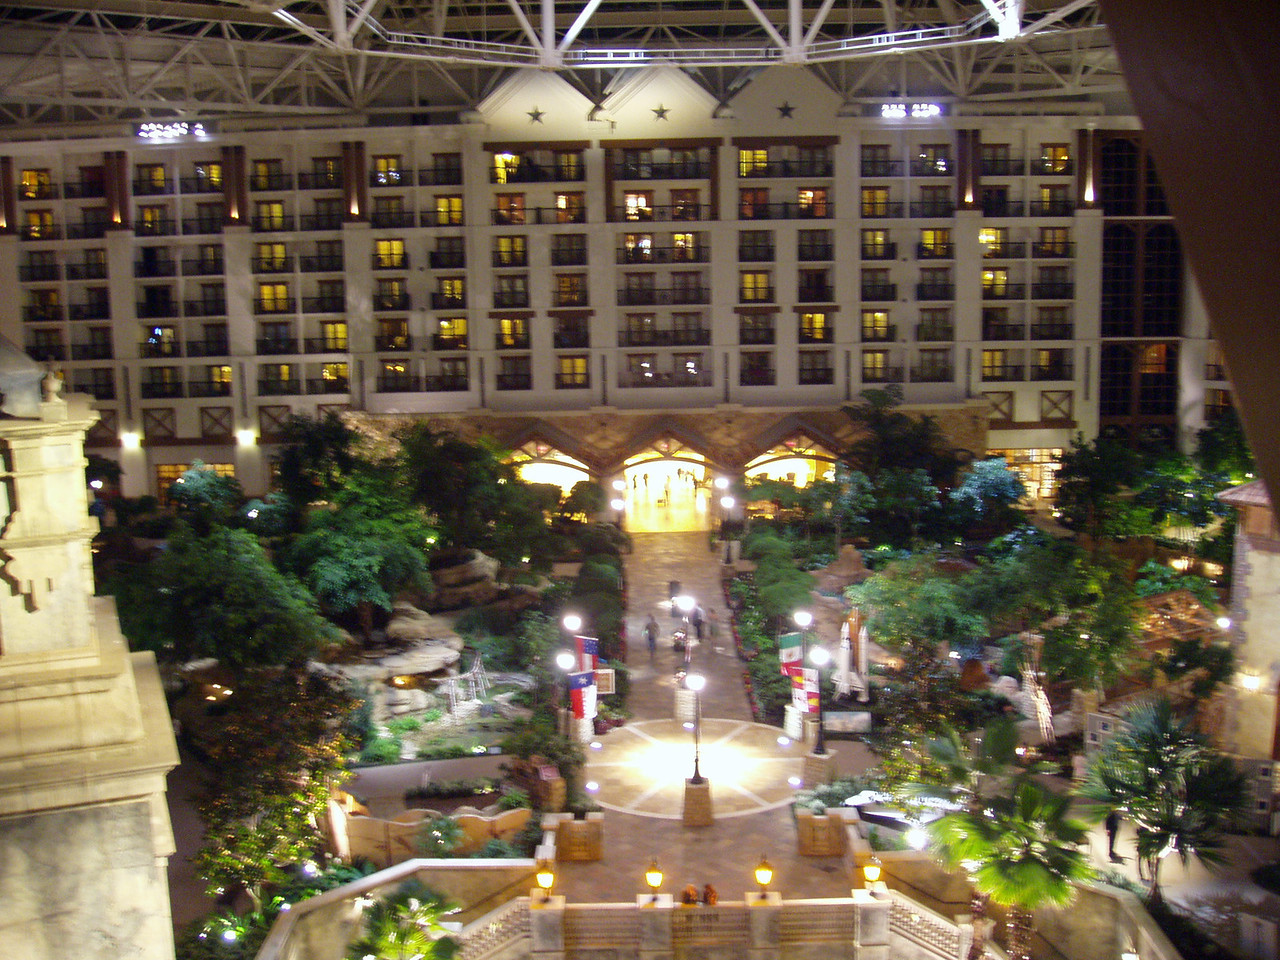 Inside the Gaylord Texan resort Day 3